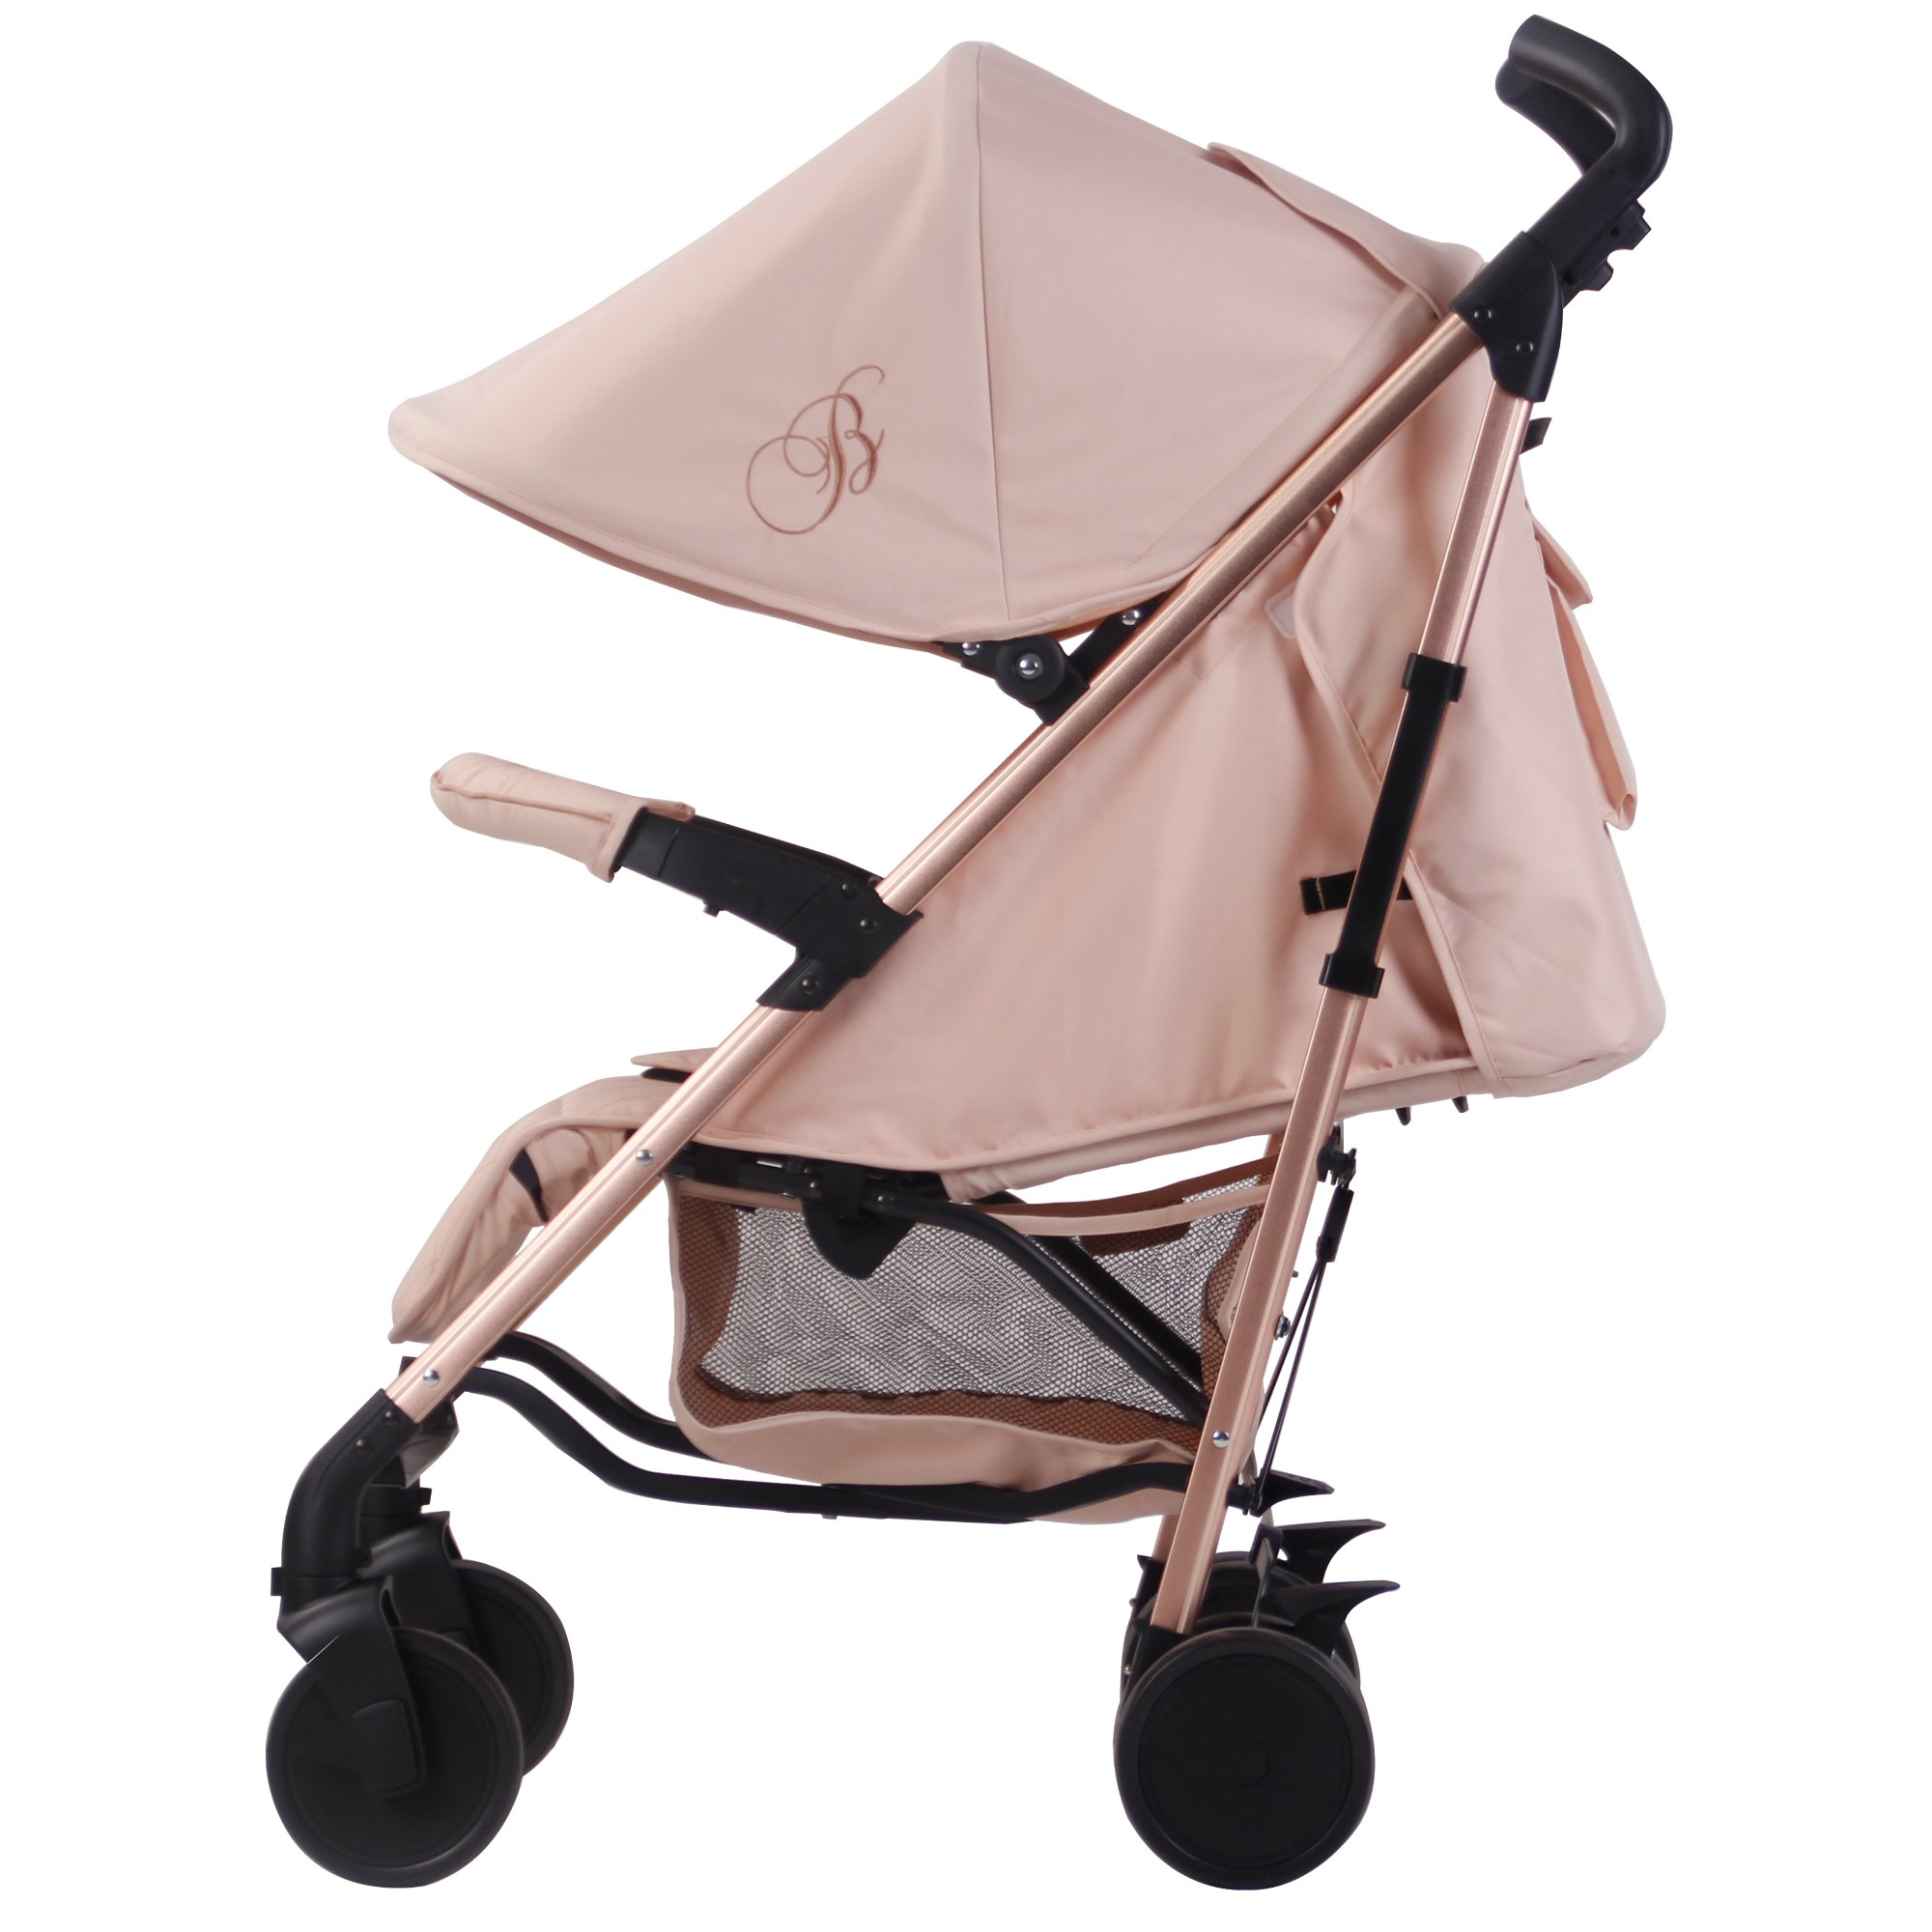 Baby Travel Systems Northern Ireland Details About My Babiie Mb51 Billie Faiers Stroller Pushchair In Rose Gold And Blush